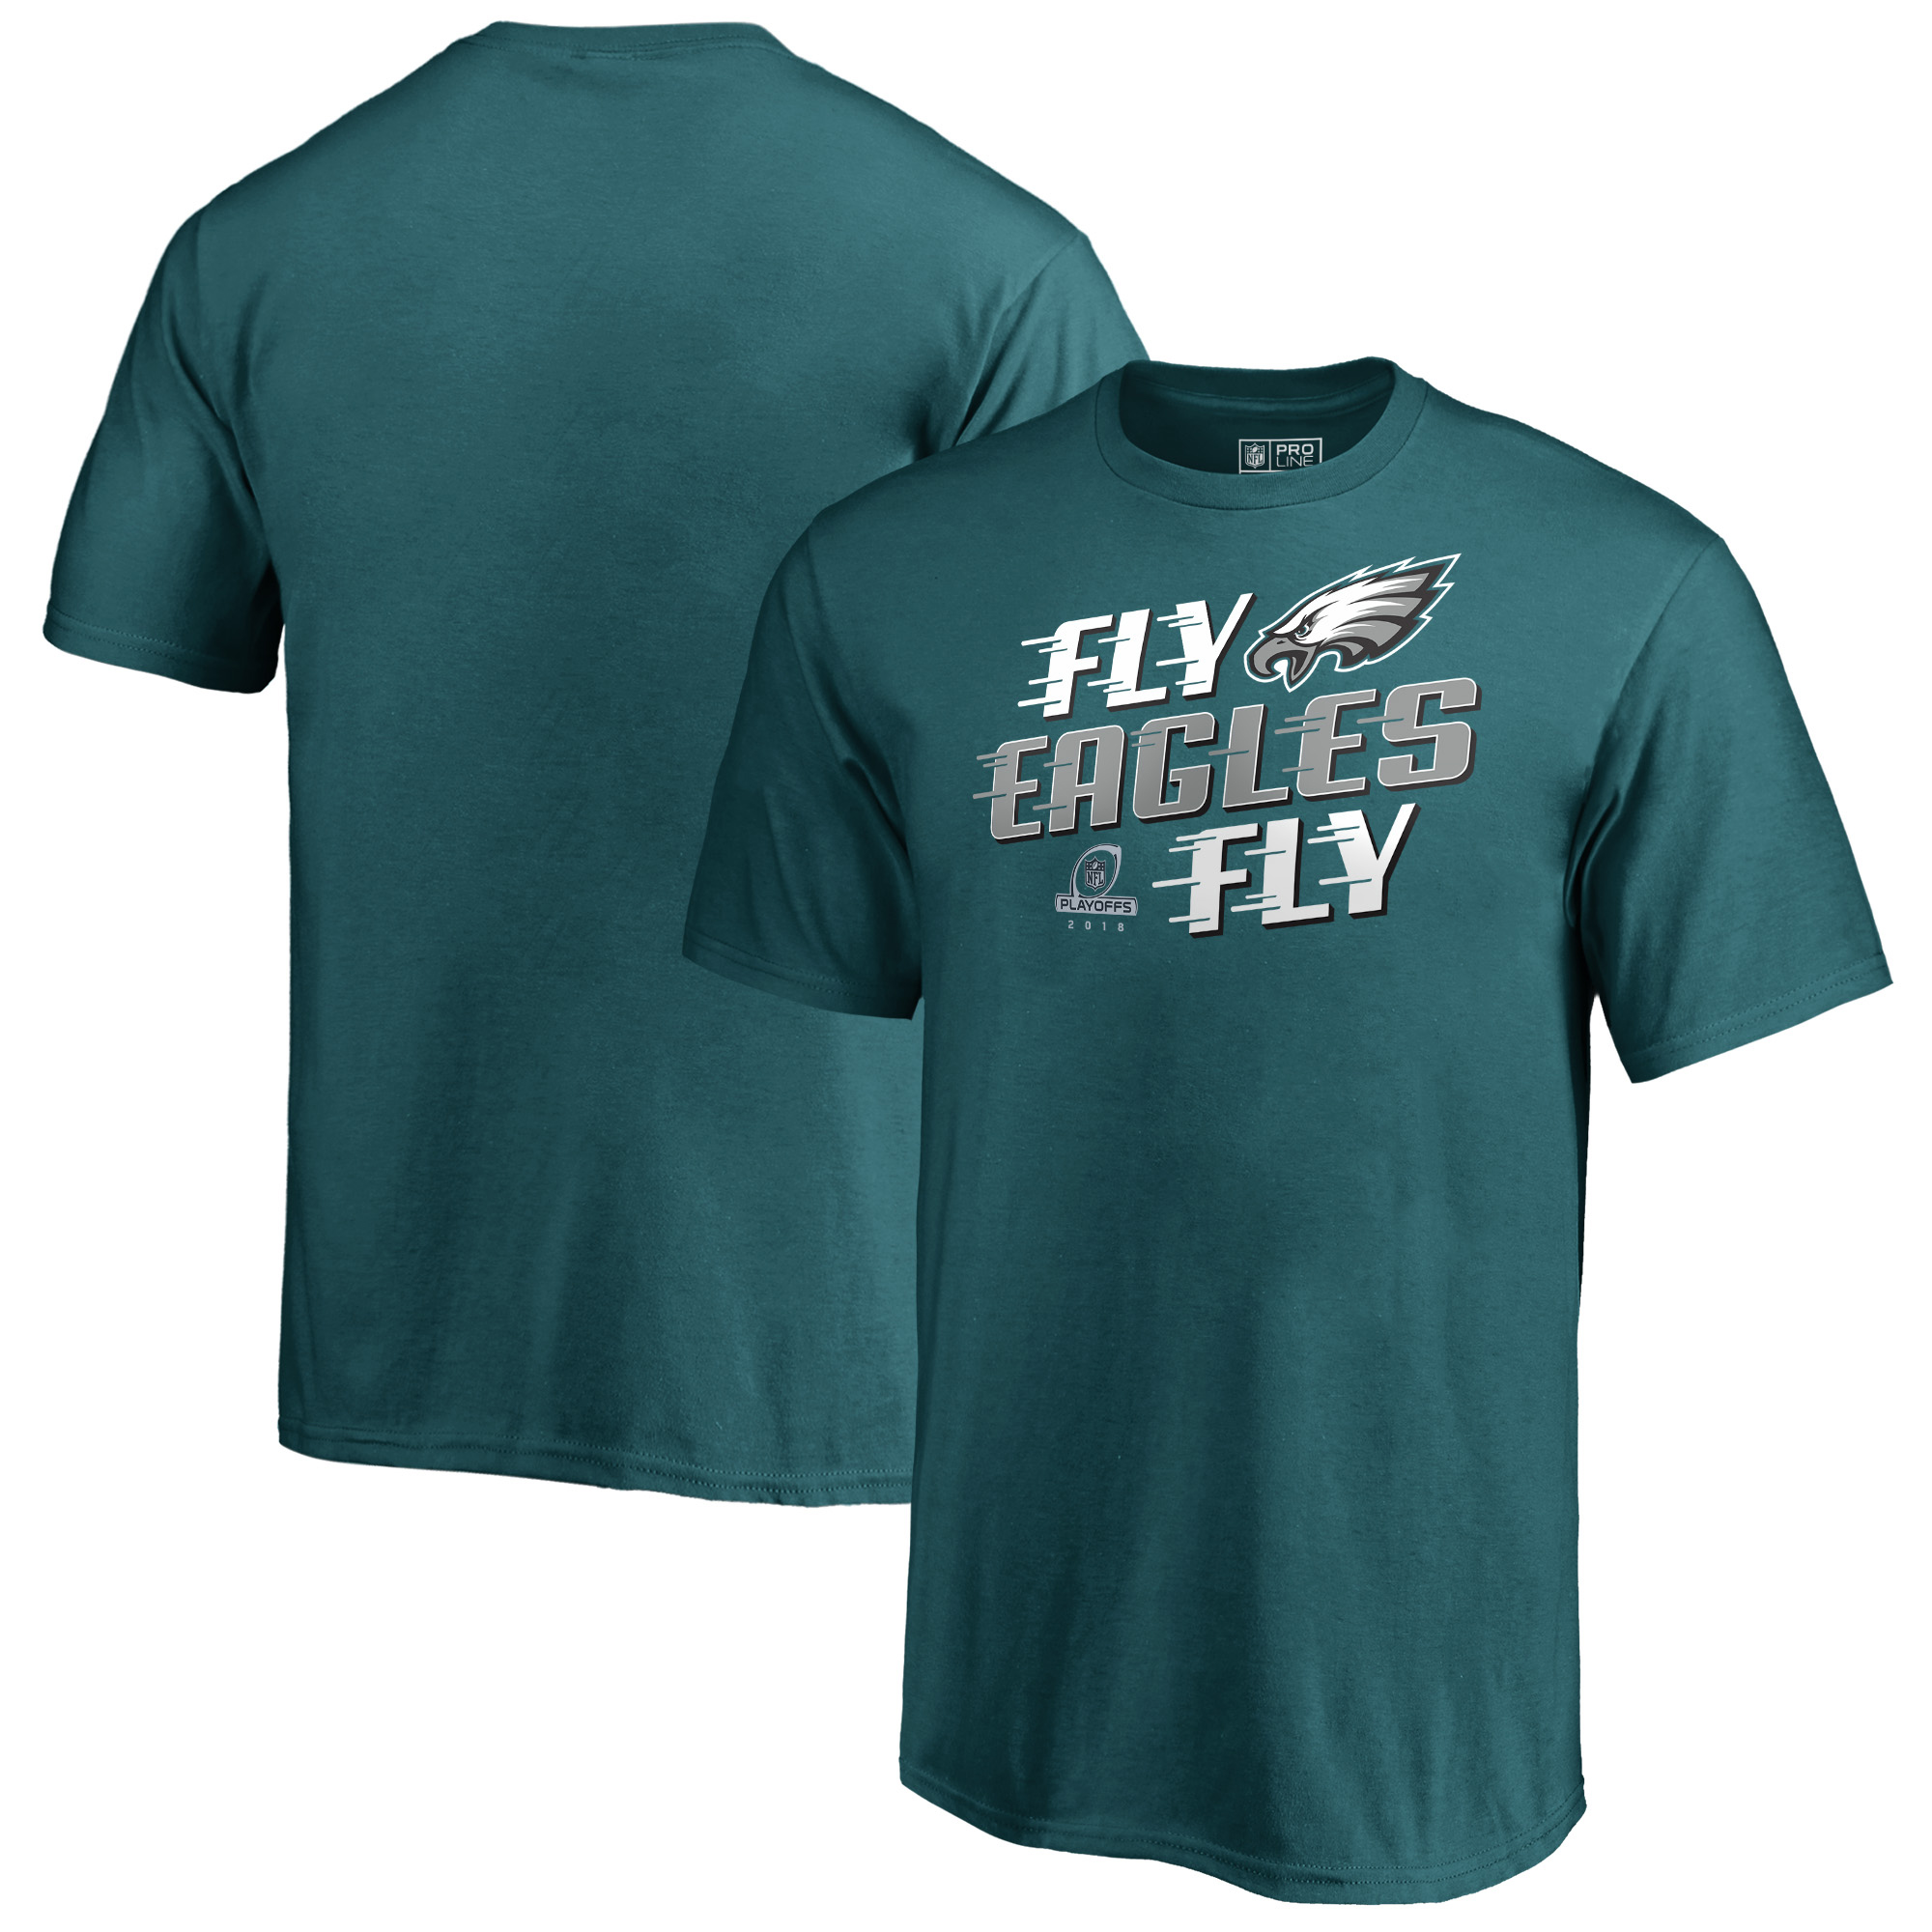 Philadelphia Eagles NFL Pro Line by Fanatics Branded Youth 2018 NFL Playoffs Bound Hometown T-Shirt - Green